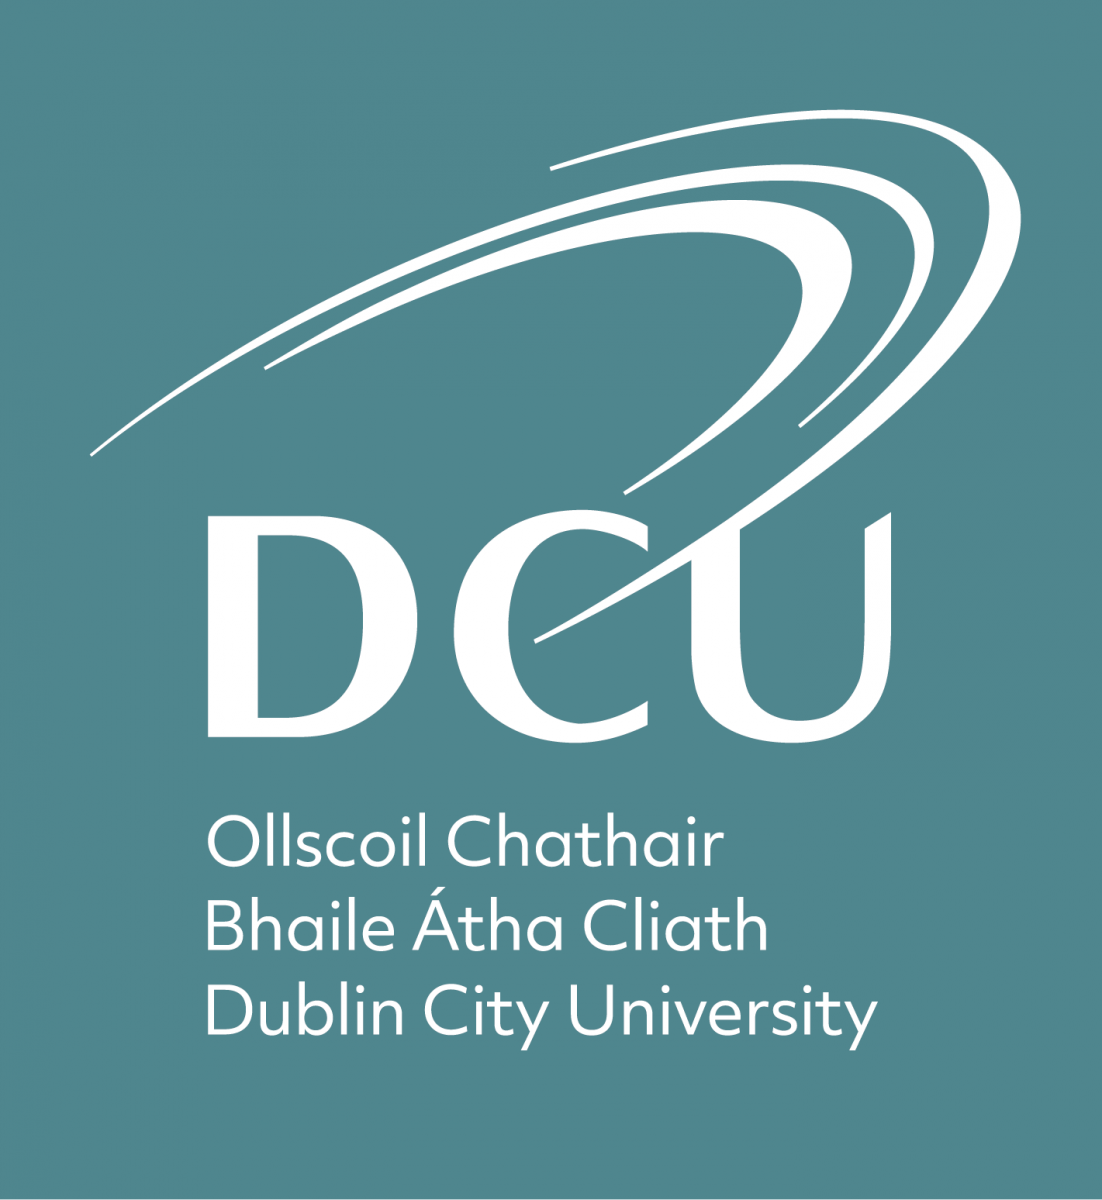 dcu_logo_stacked_green.png